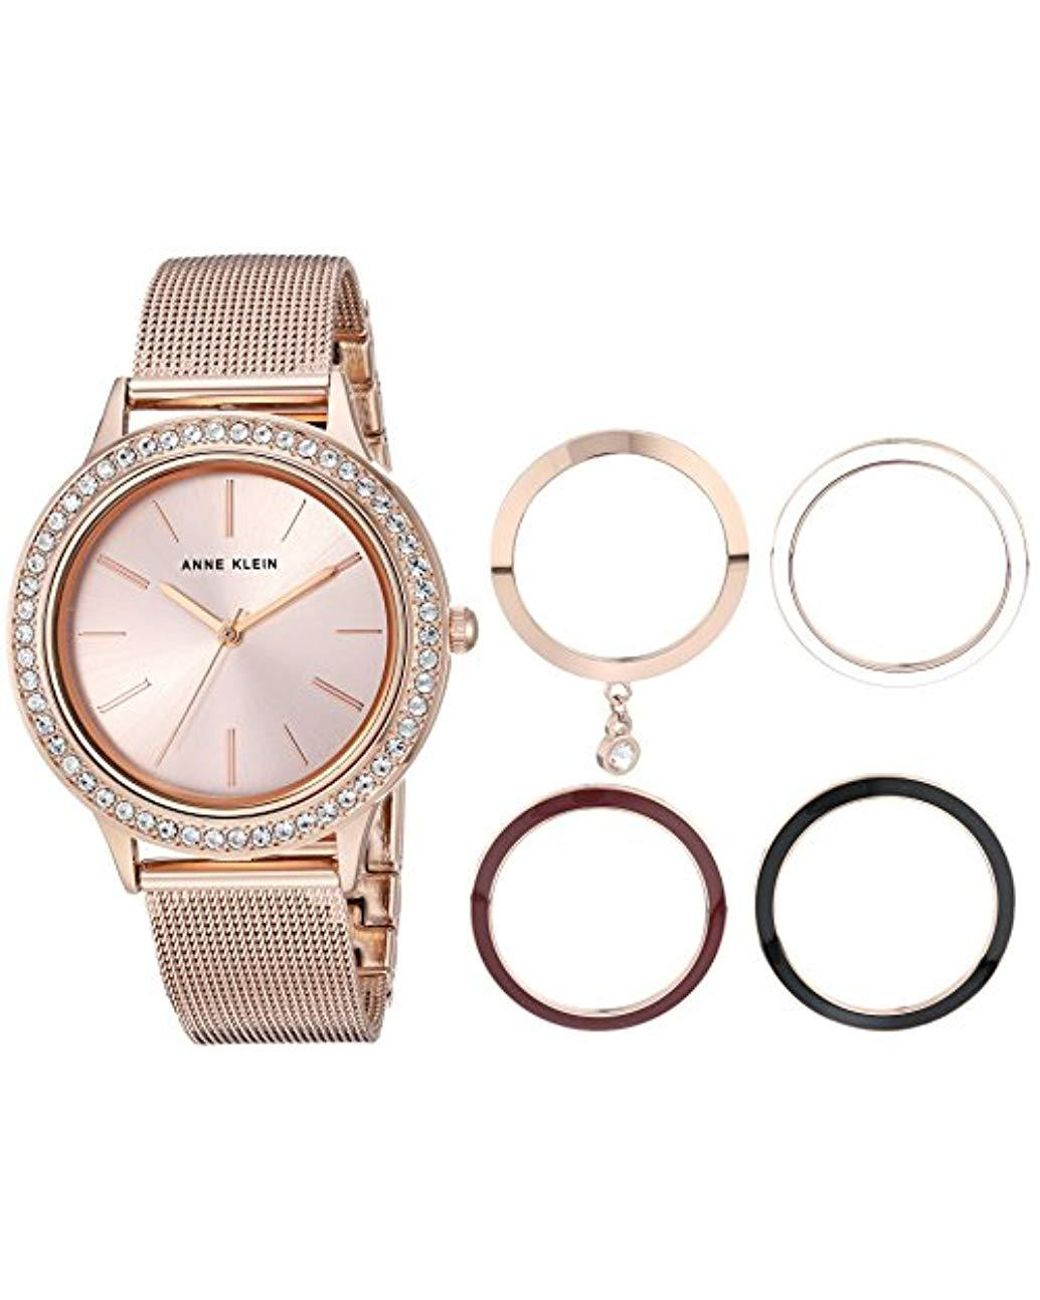 db551f34b57 Lyst - Anne Klein Bracelet Watch And Interchangeable Bezel Set in Metallic  - Save 26%